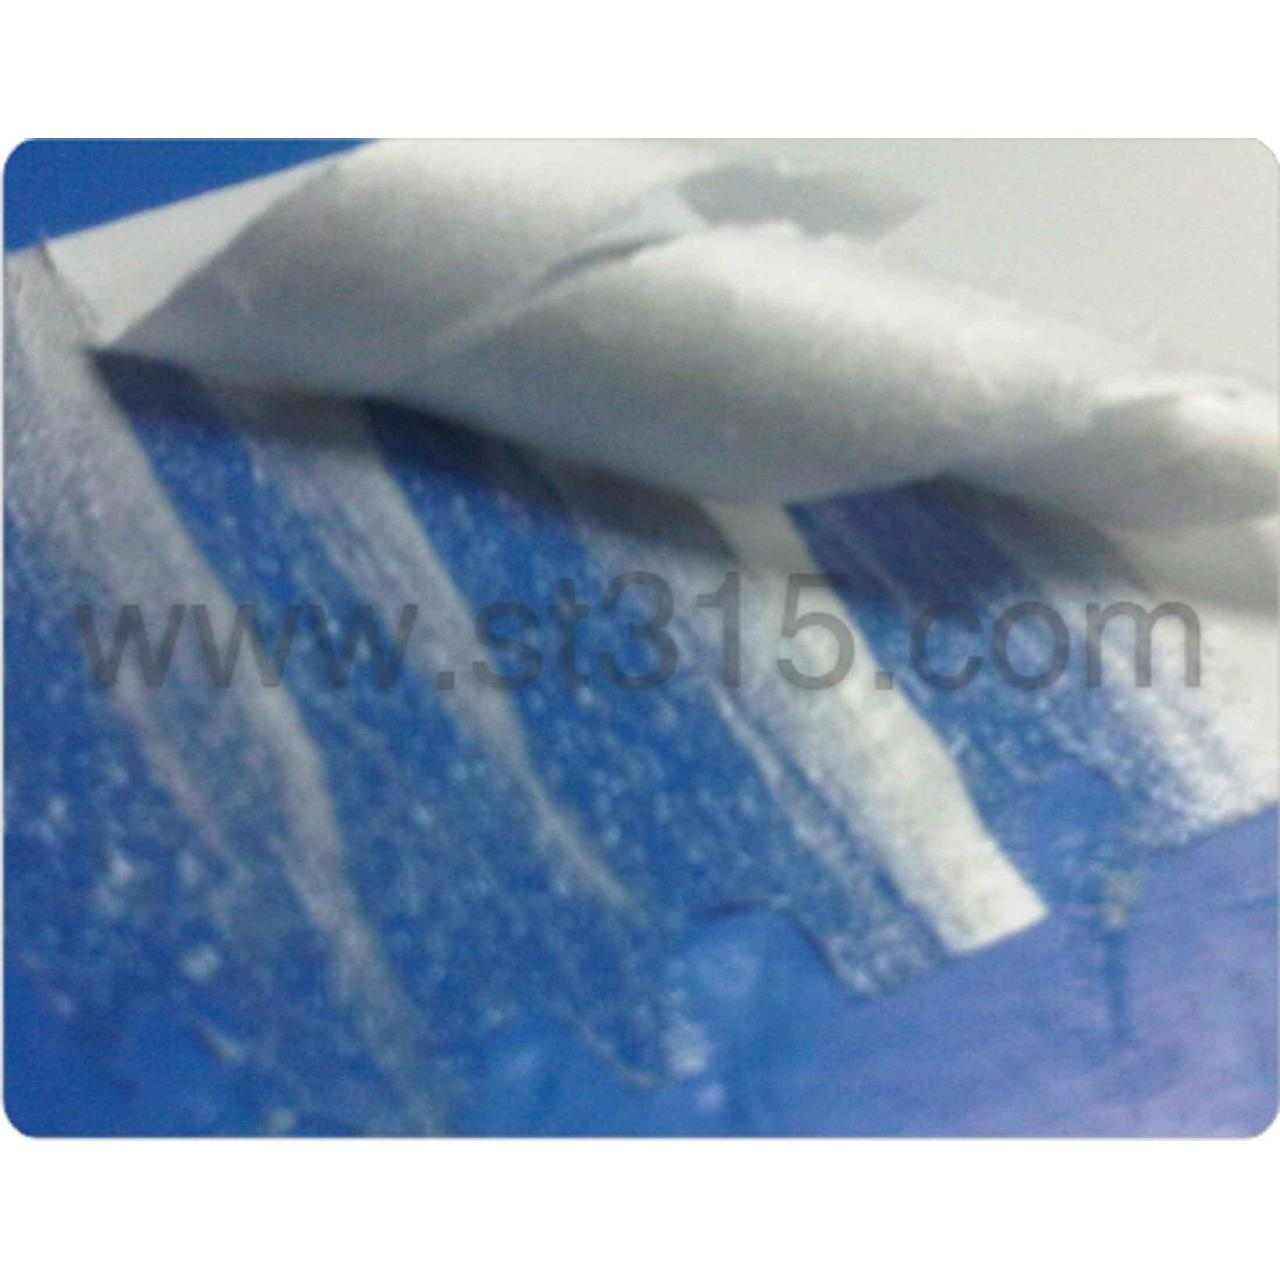 Co-extruded friable material